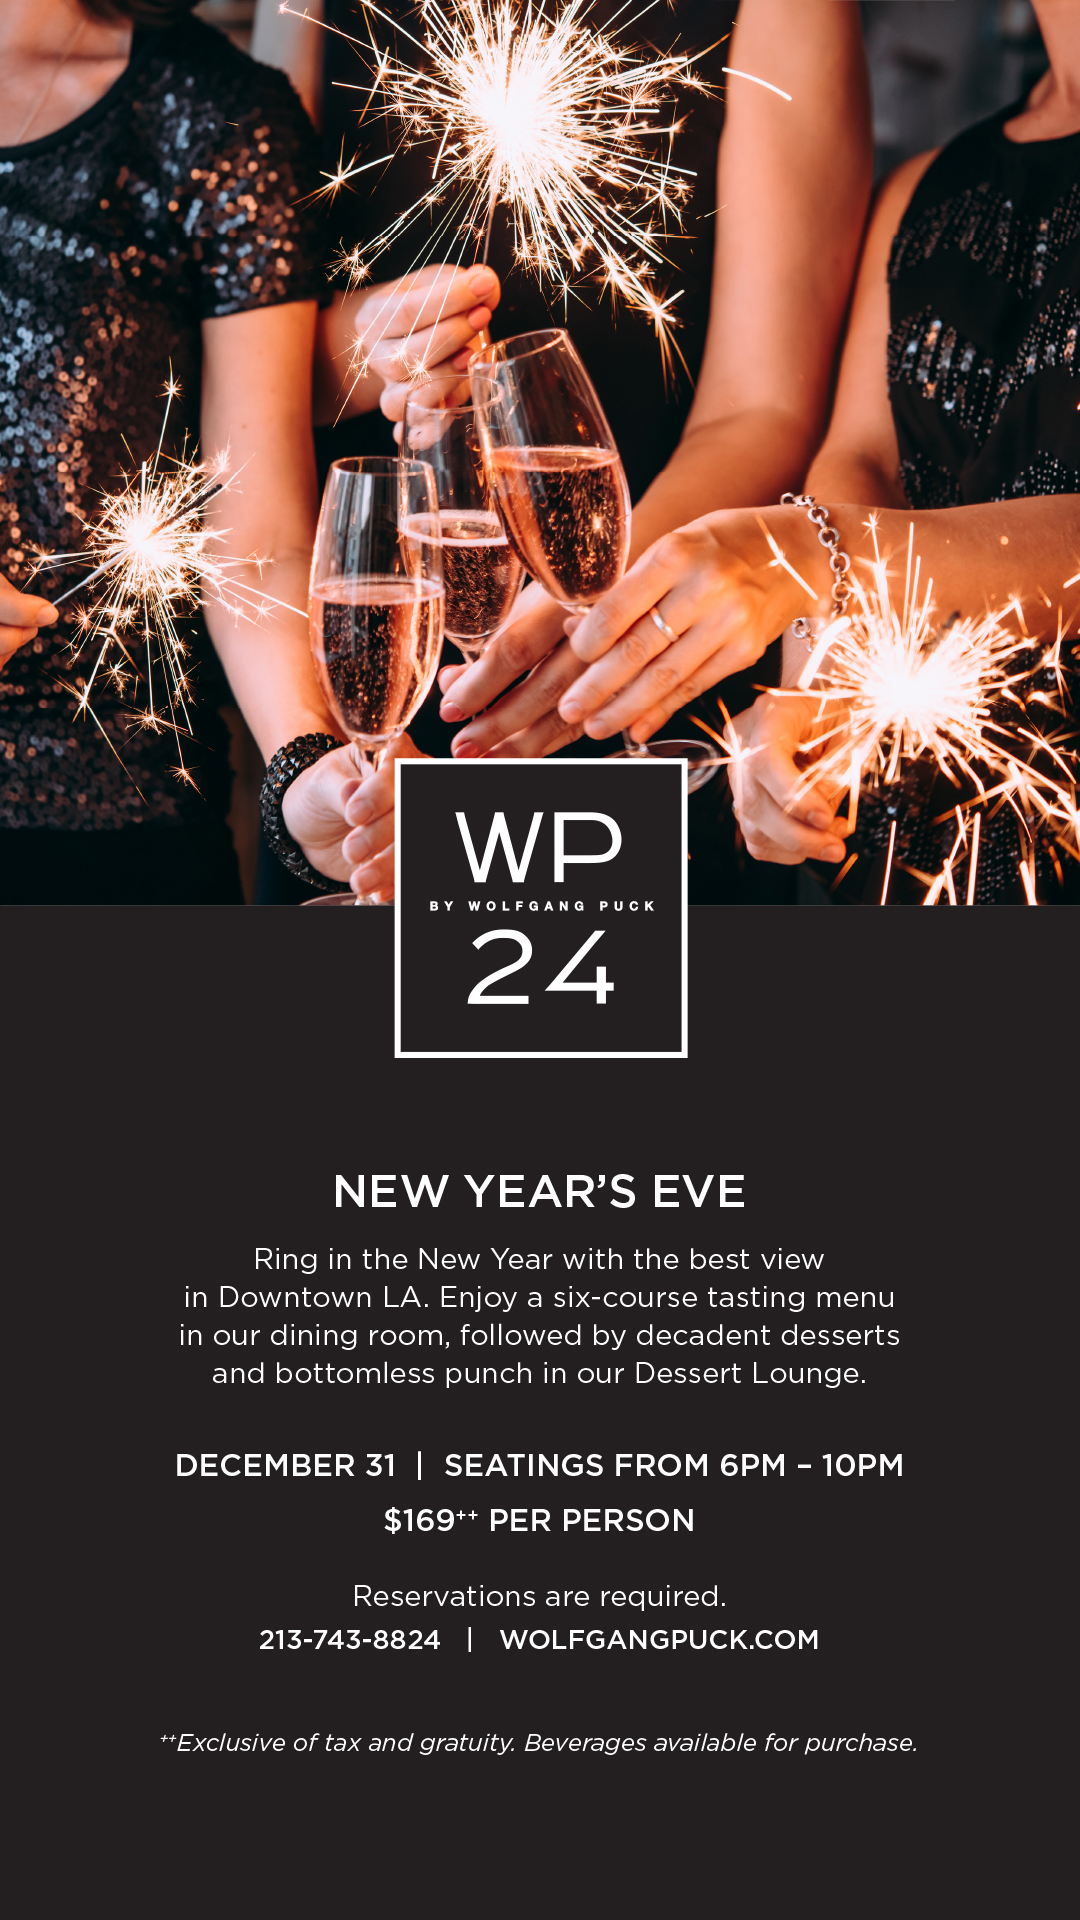 New Year's Eve - LA LIVE w/ Wolfgang Puck